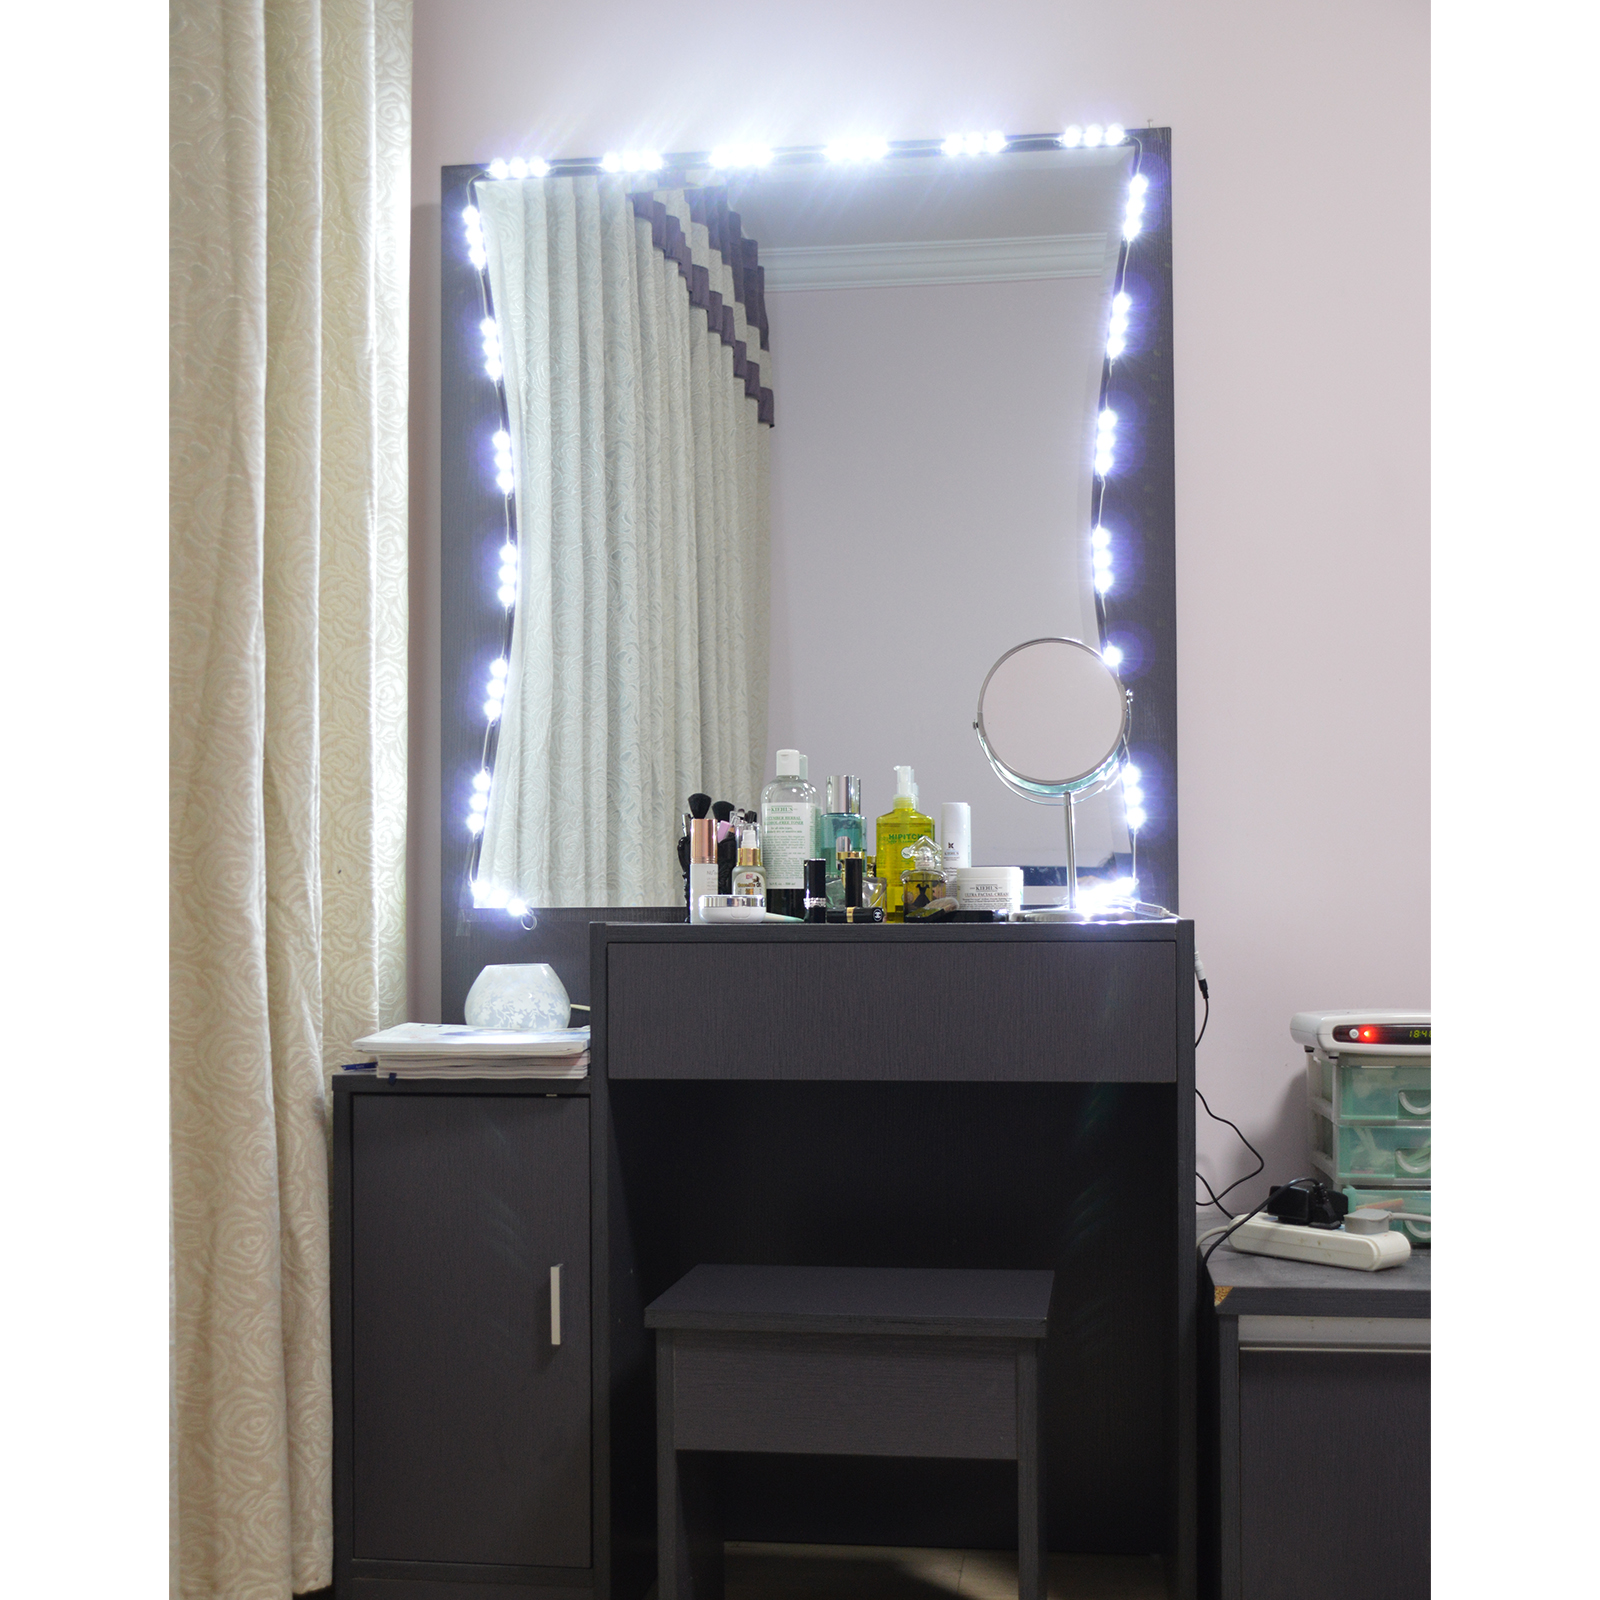 PENSON & CO. 10ft LED Mirror Light Kit Vanity Mirror Light Lighted Cosmetic Makeup With Dimmer Wireless Controller